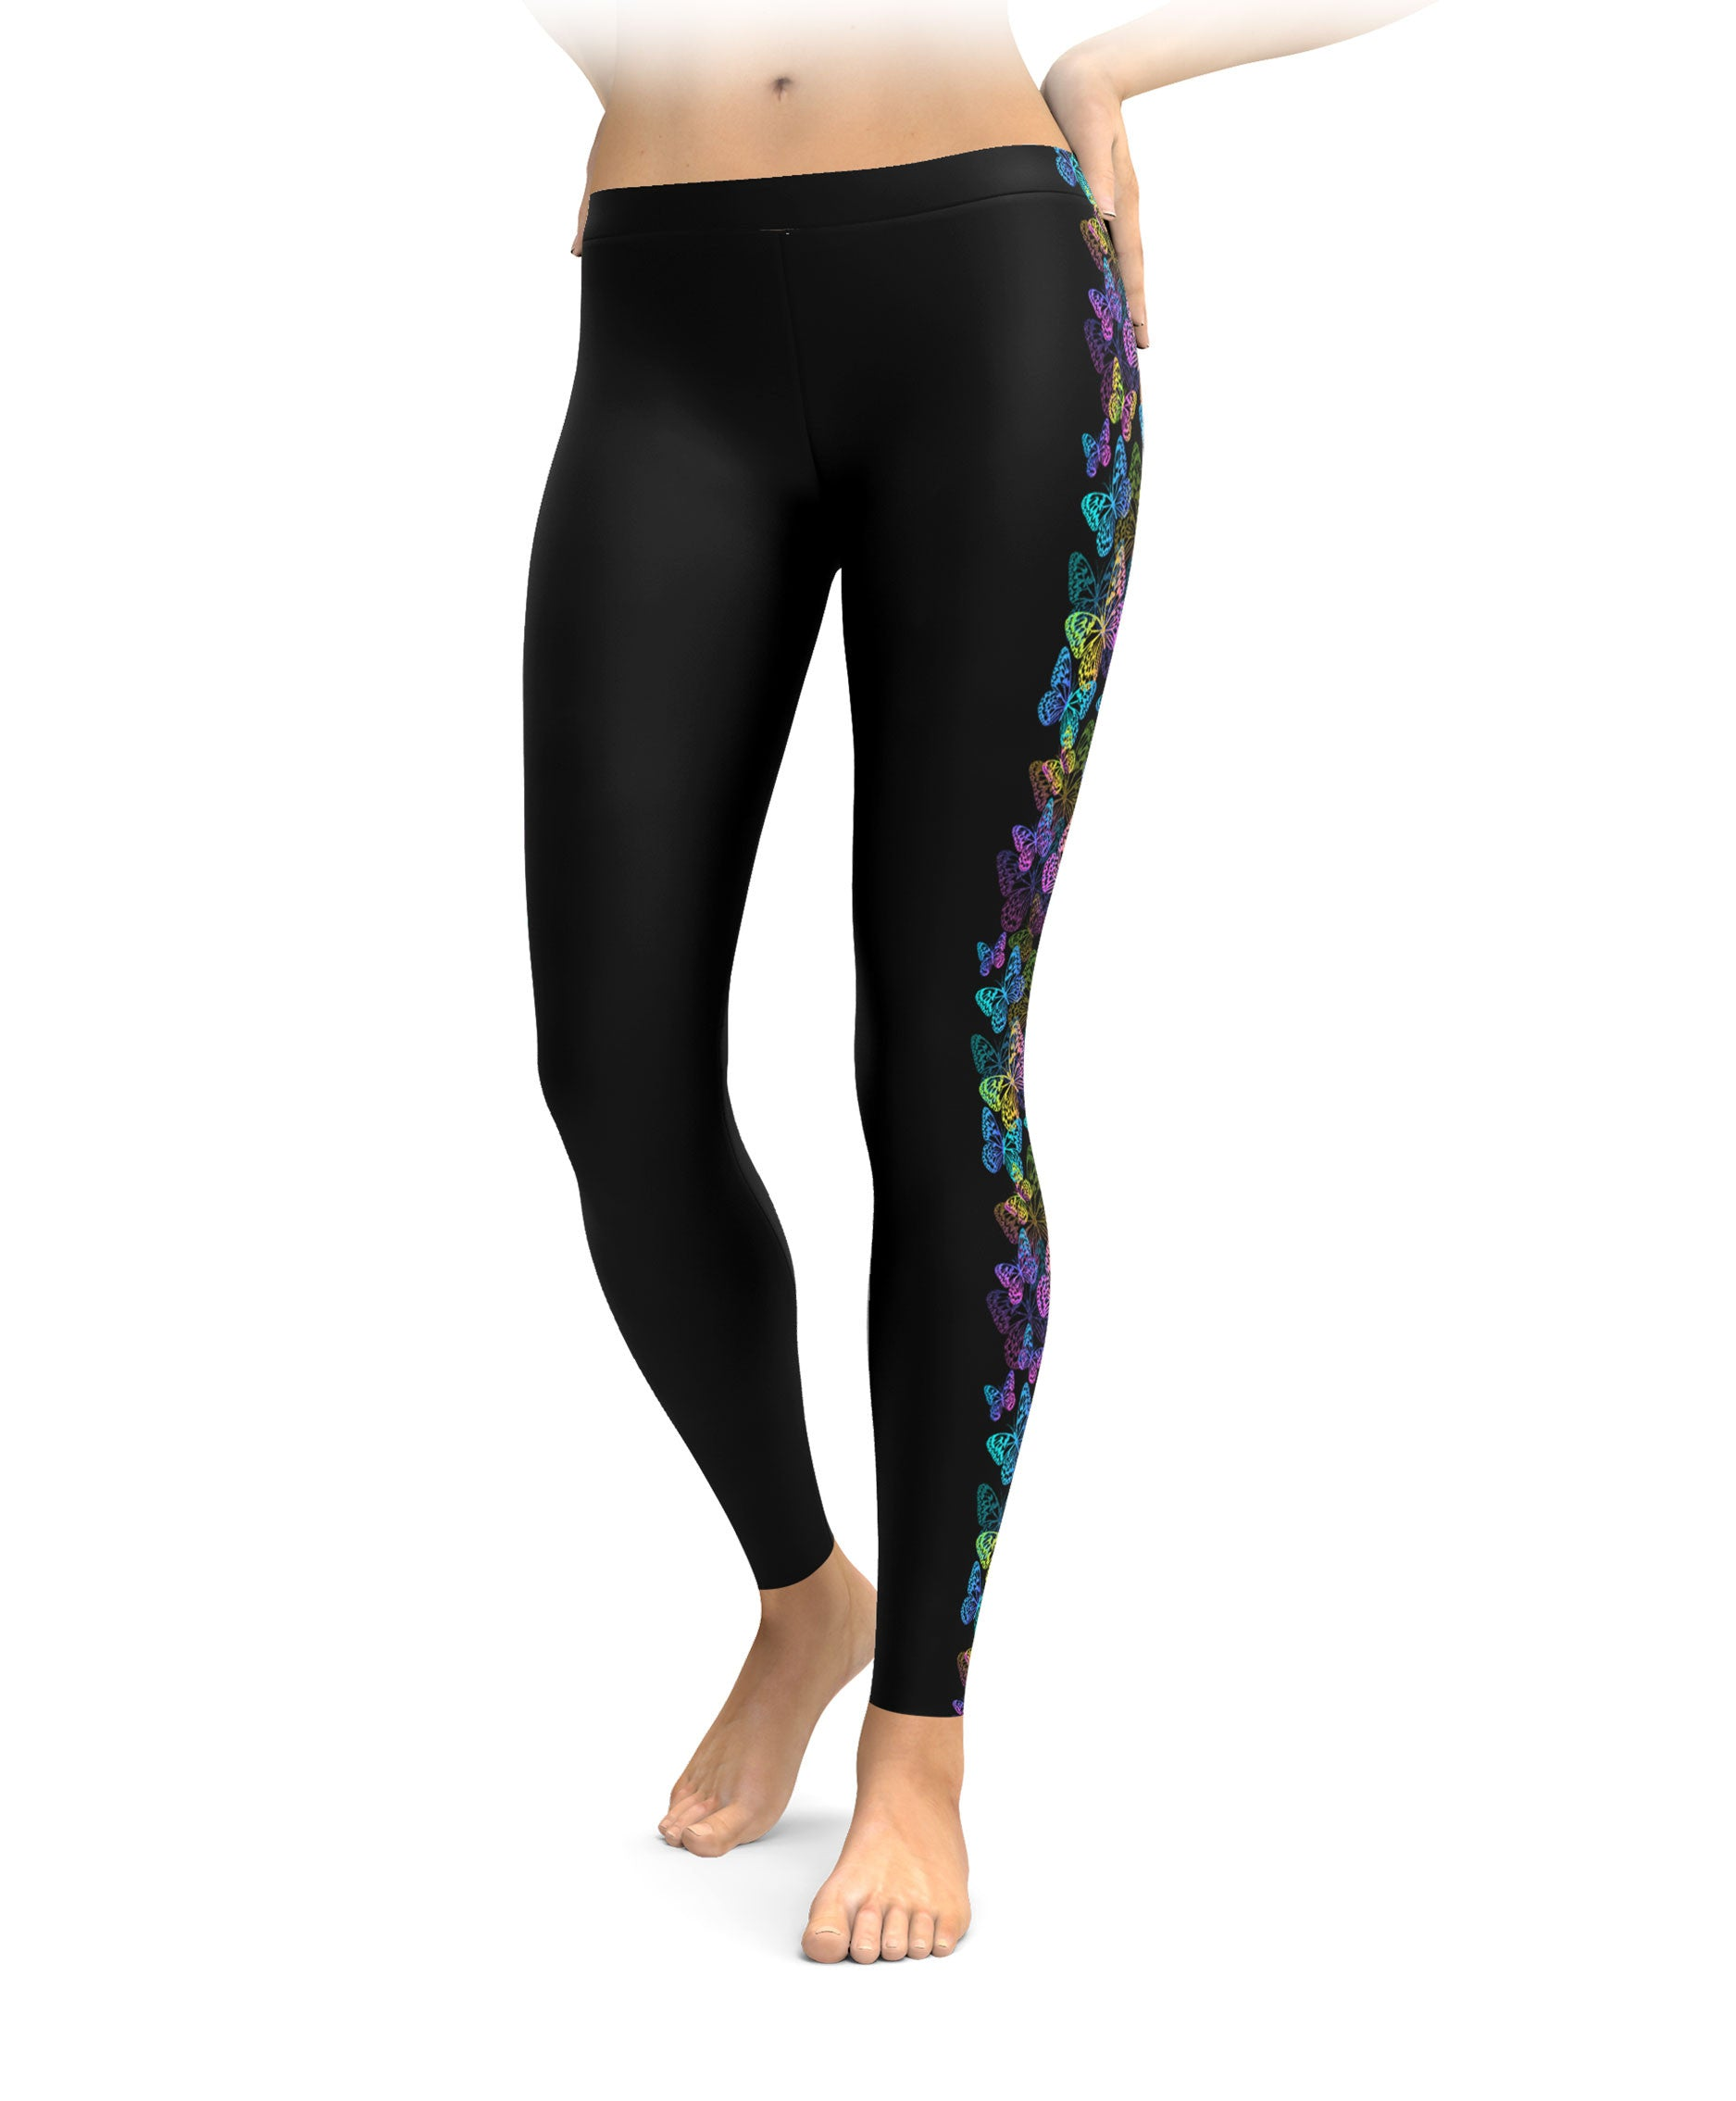 Casual style goes effortless with the women's Dream jeggings from Simply Styled. The mid-rise waist sits just above the hips and extends to a straight leg that tapers at the ankle. The mid-rise waist sits just above the hips and extends to a straight leg that tapers at the ankle.